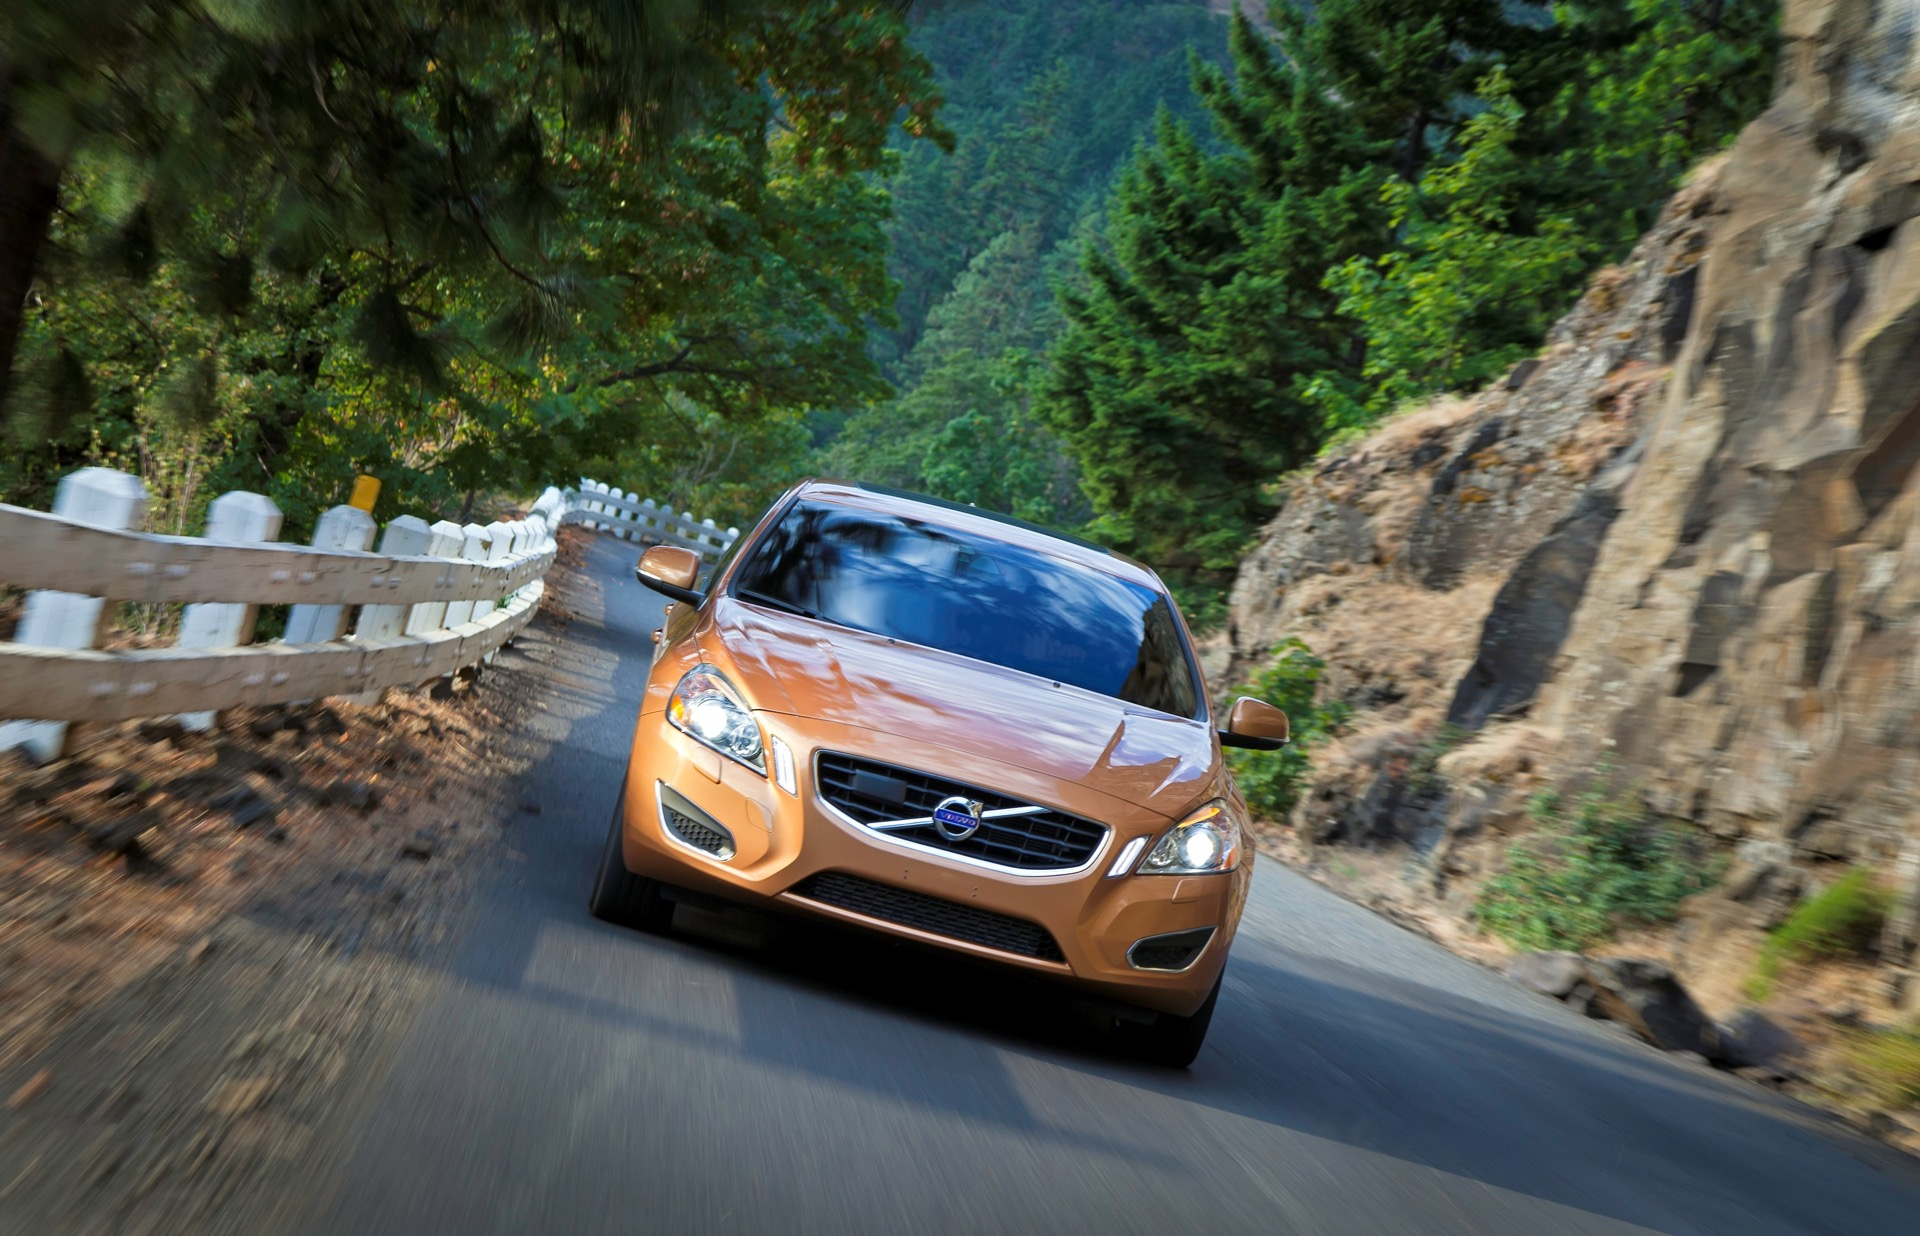 S60 T6 Awd Driving Action01 -  Volvo